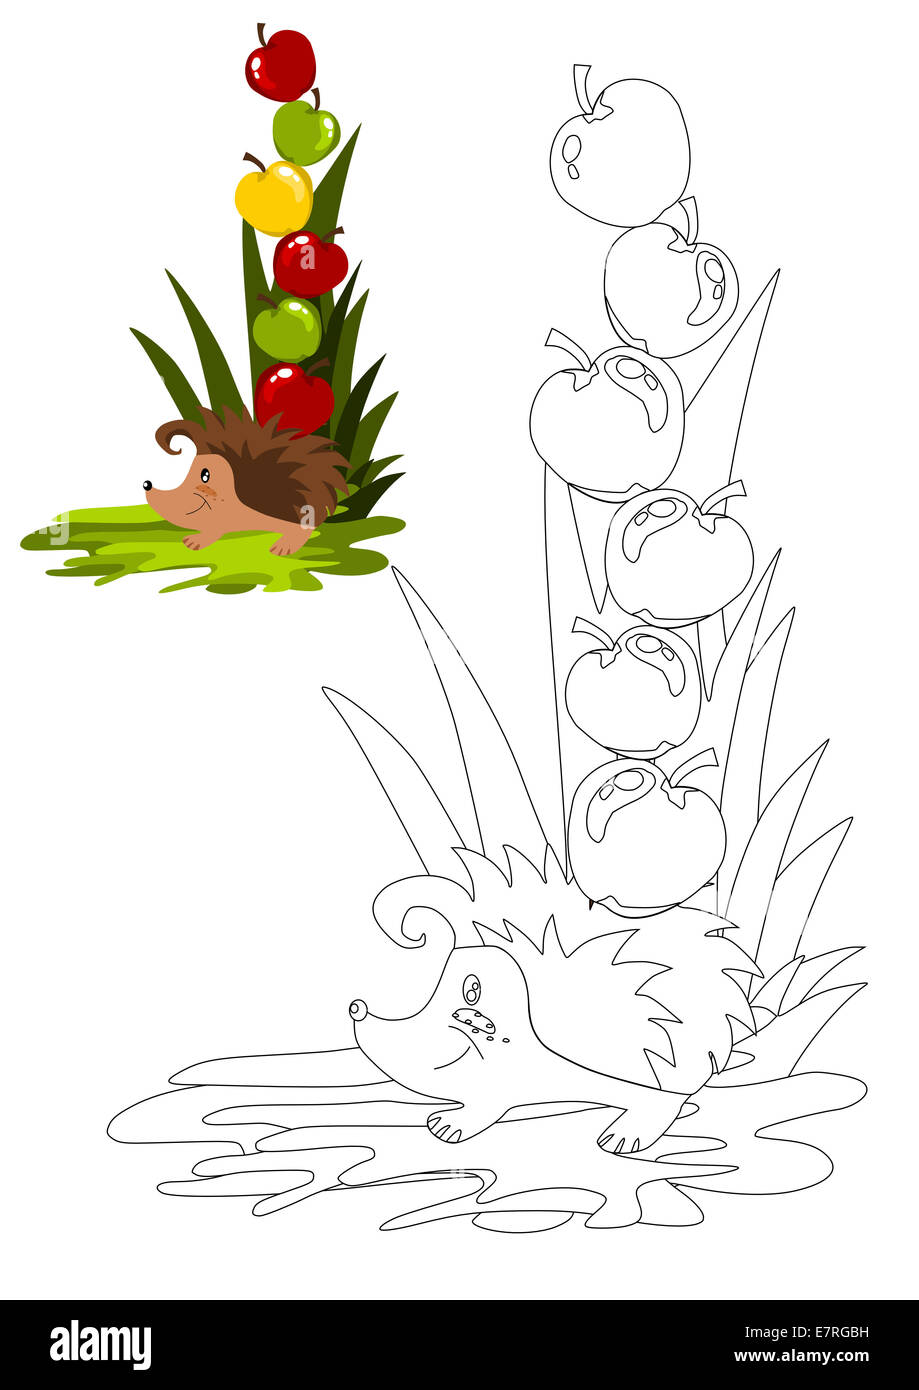 Coloring book with hedgehog vector illustration. - Stock Image